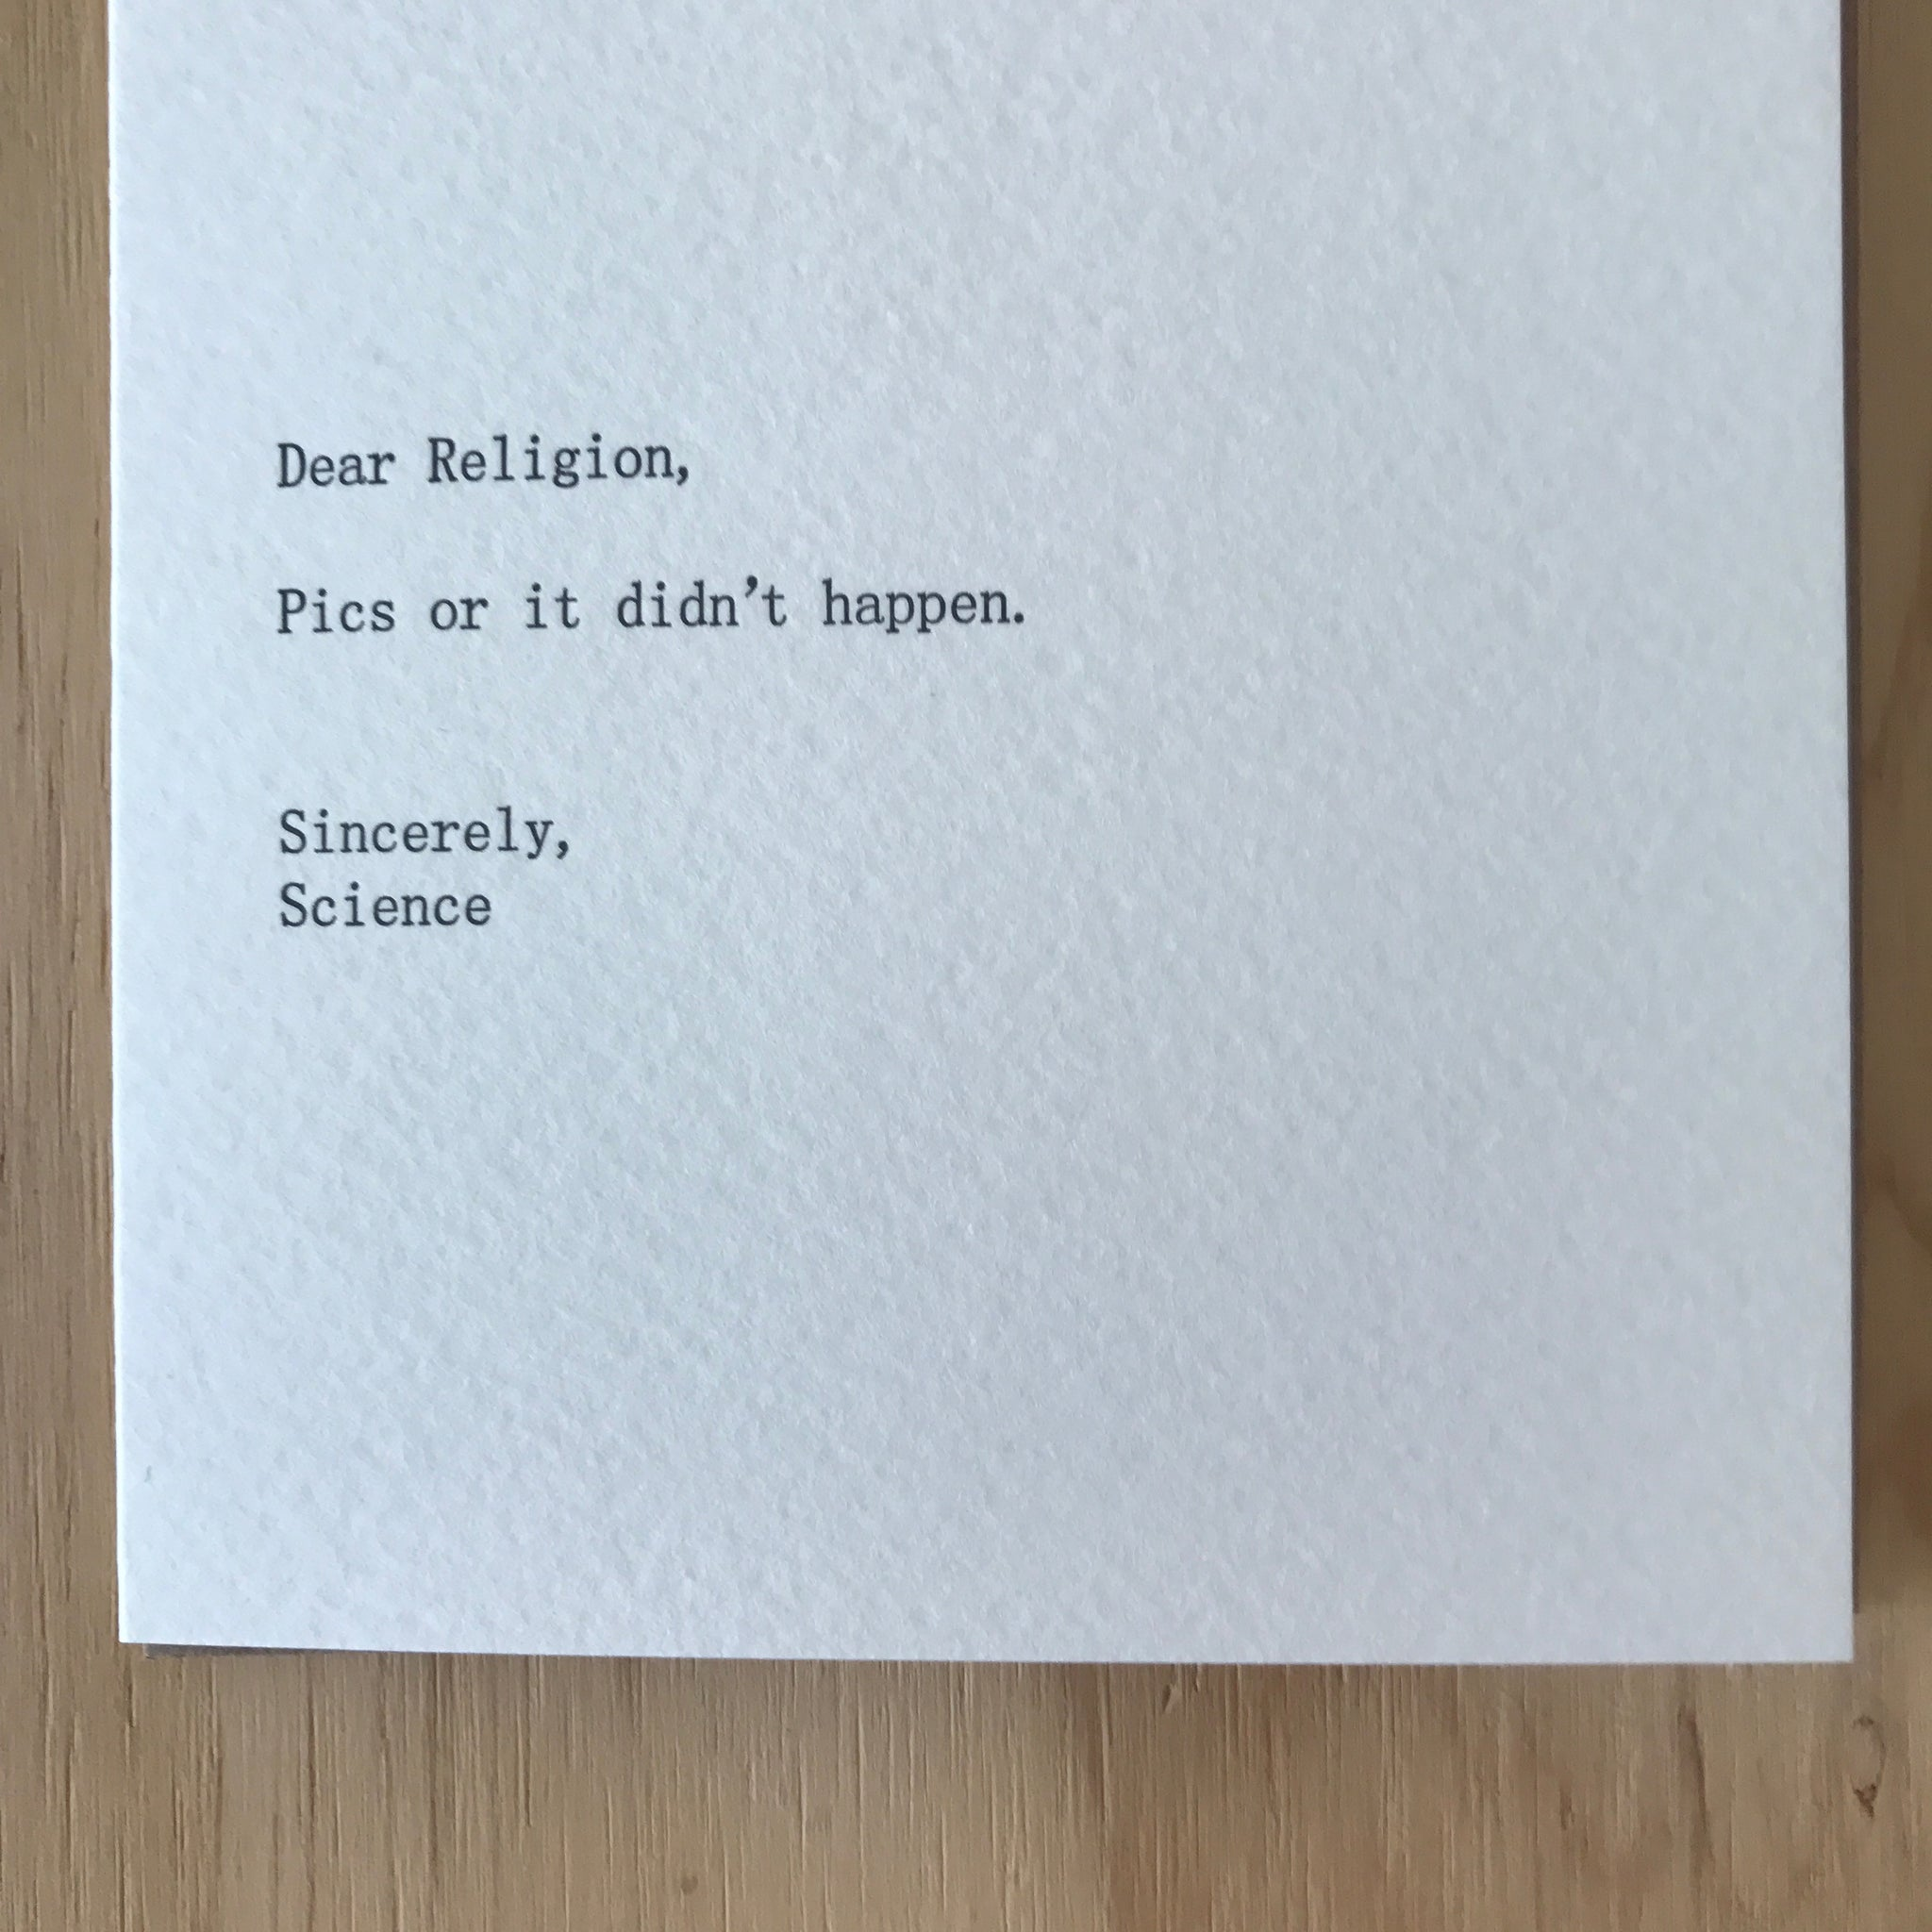 Dear Religion, Sincerely Science Letterpress Greeting Card by Sapling Press - Upstate MN